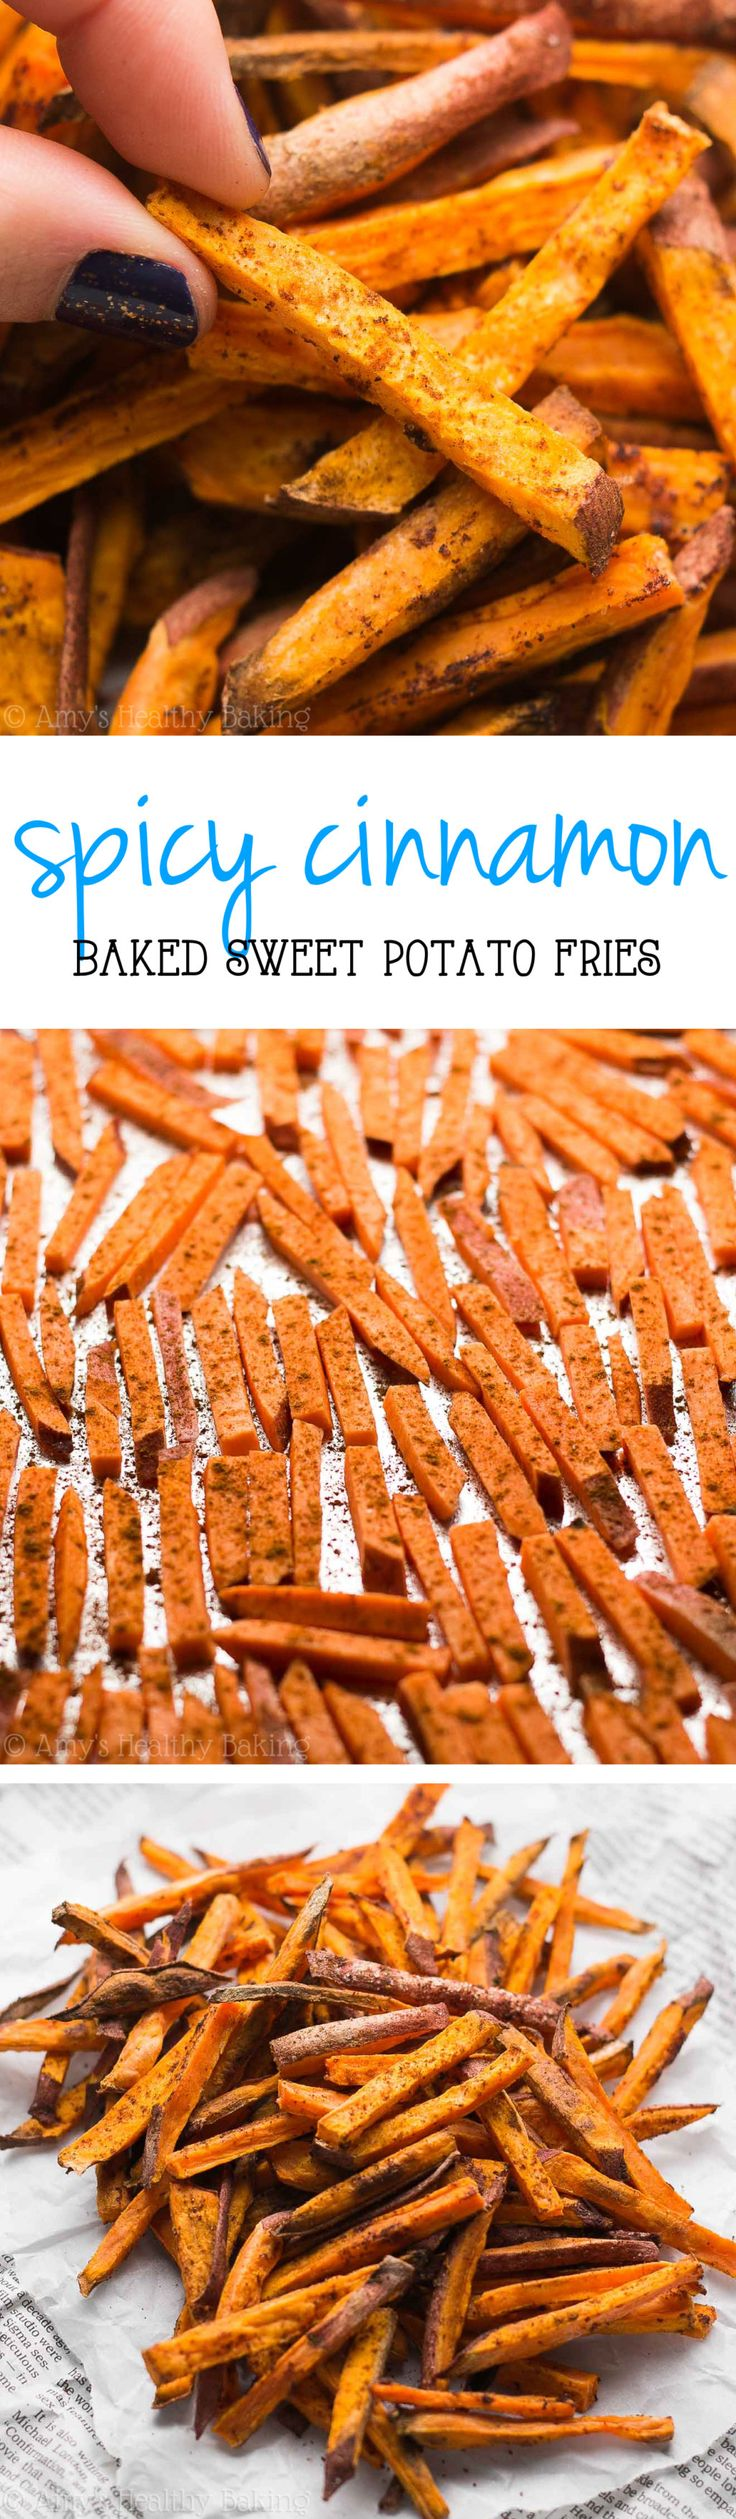 how to cook sweet potato fries for baby